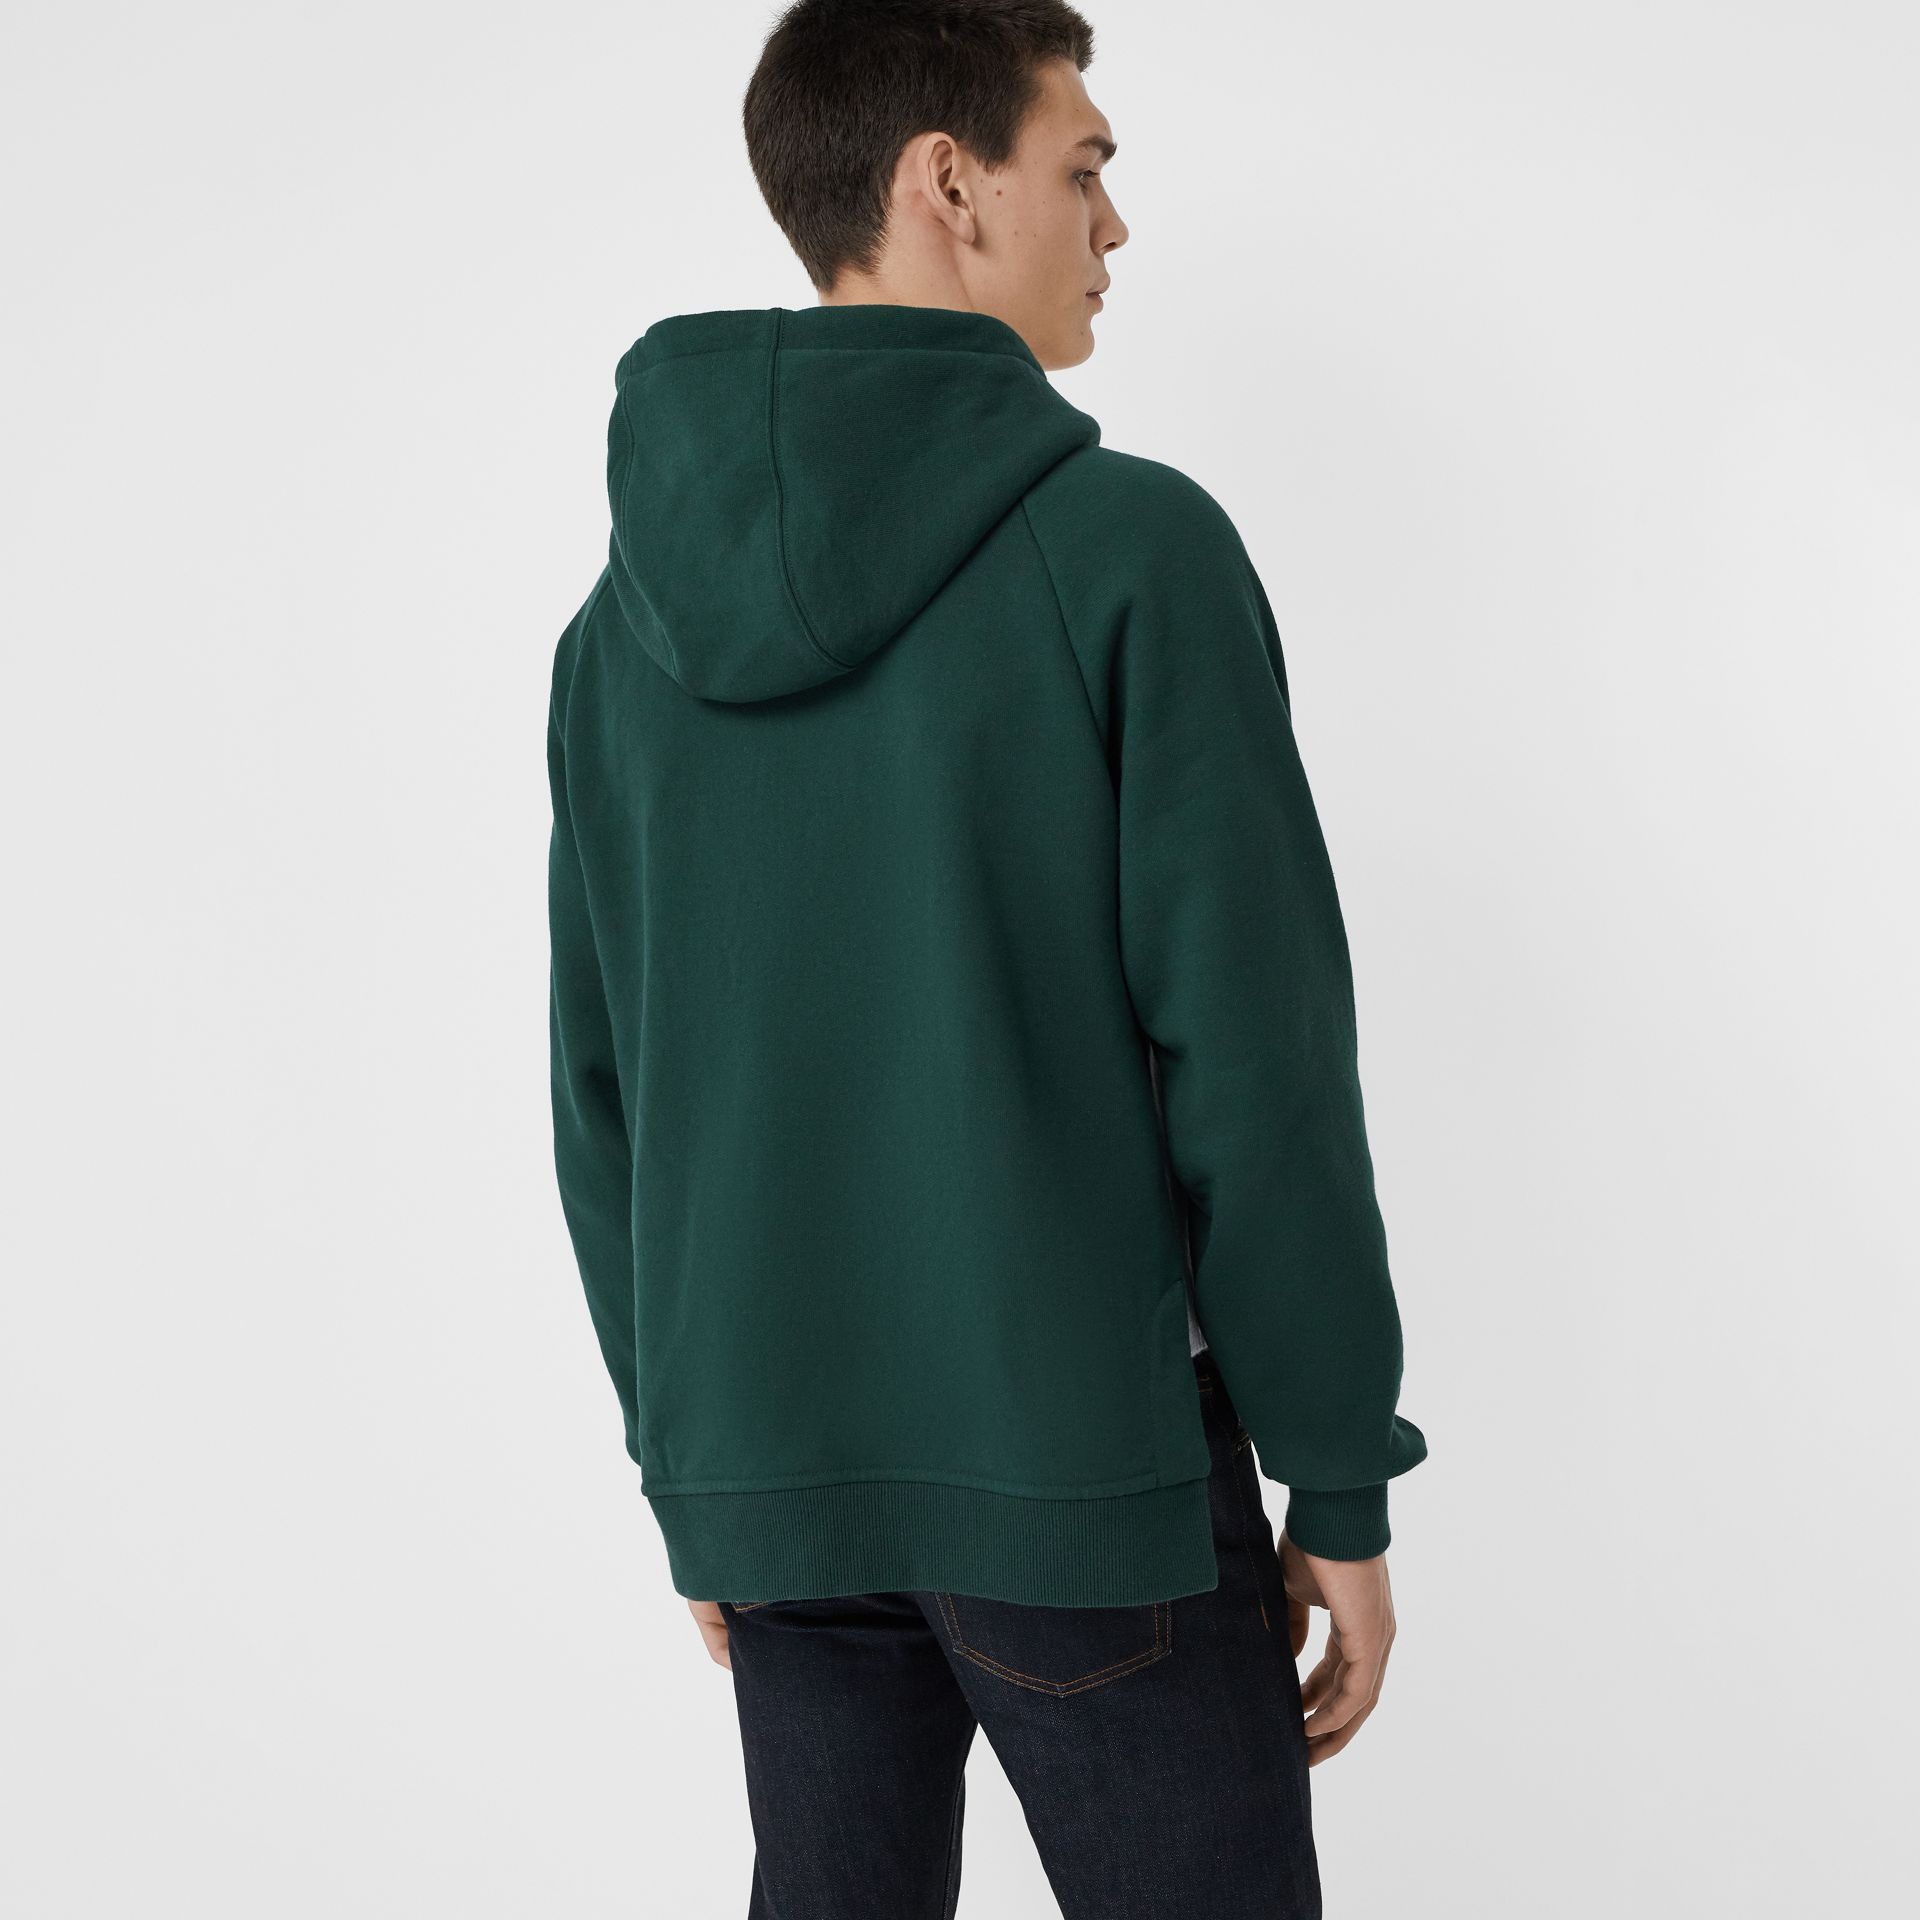 House Music Intarsia Jersey Hoodie in Forest Green - Men | Burberry - gallery image 2